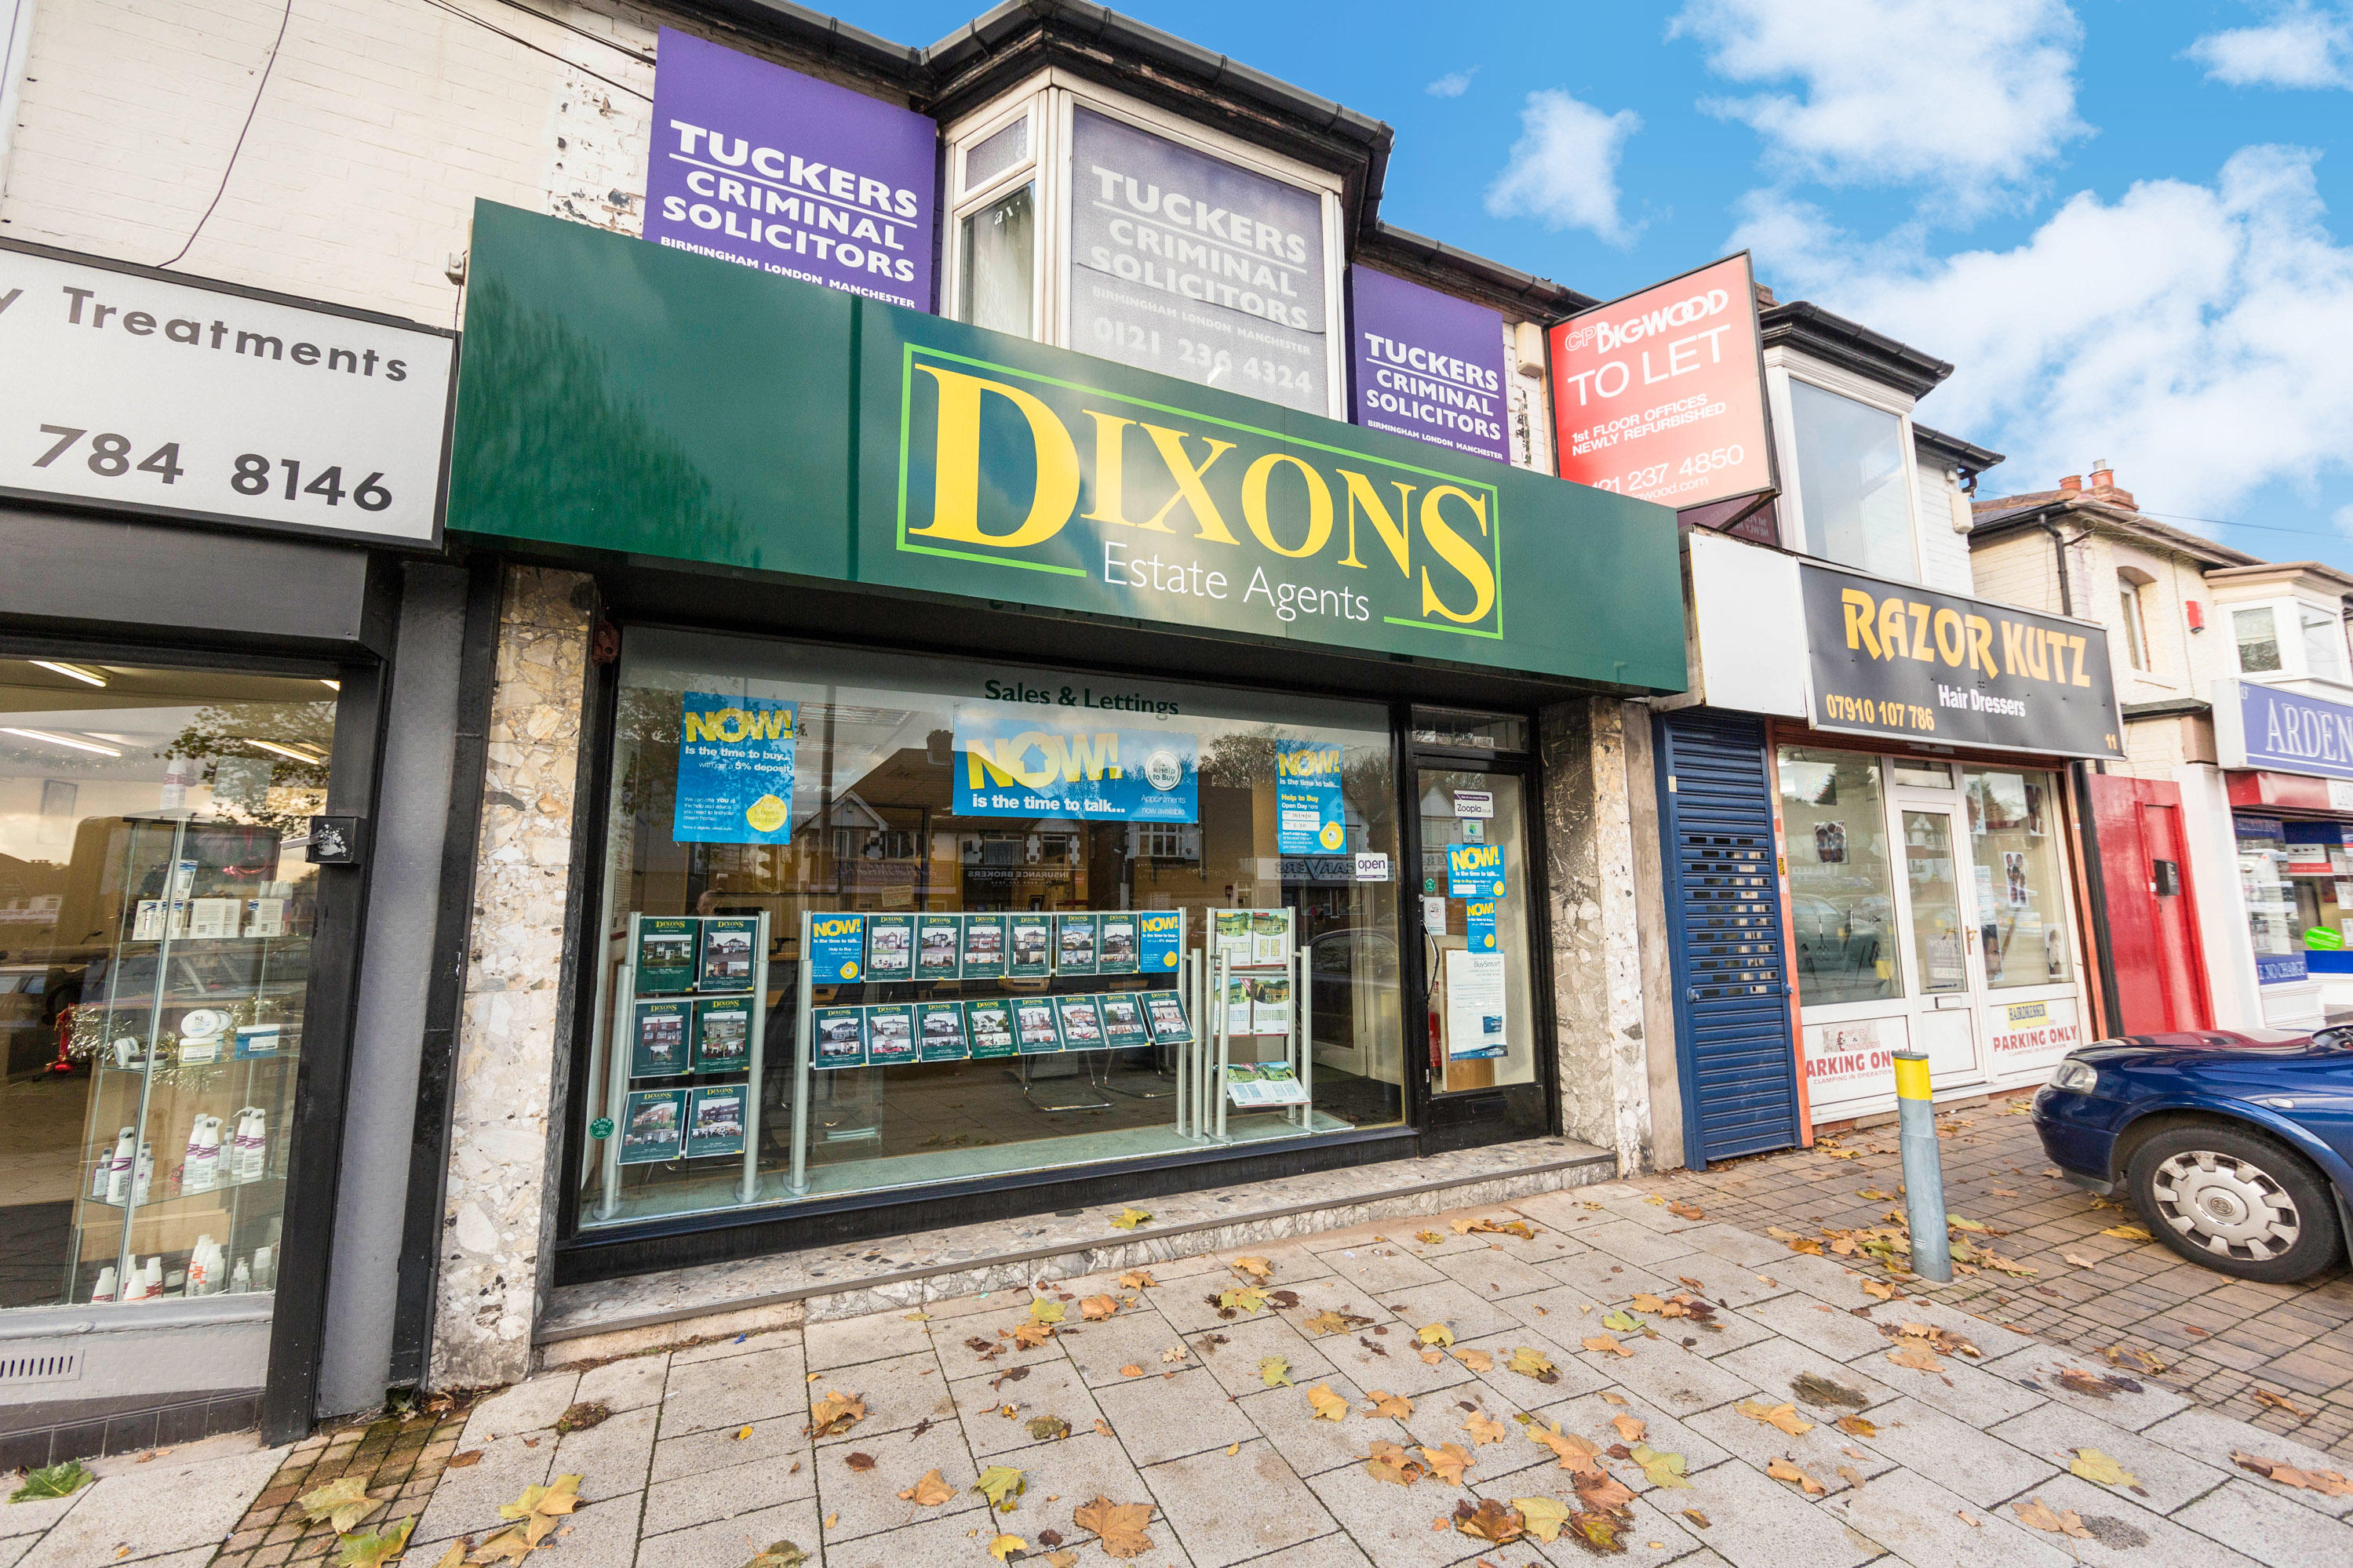 Dixons Estate Agents Hodge Hill